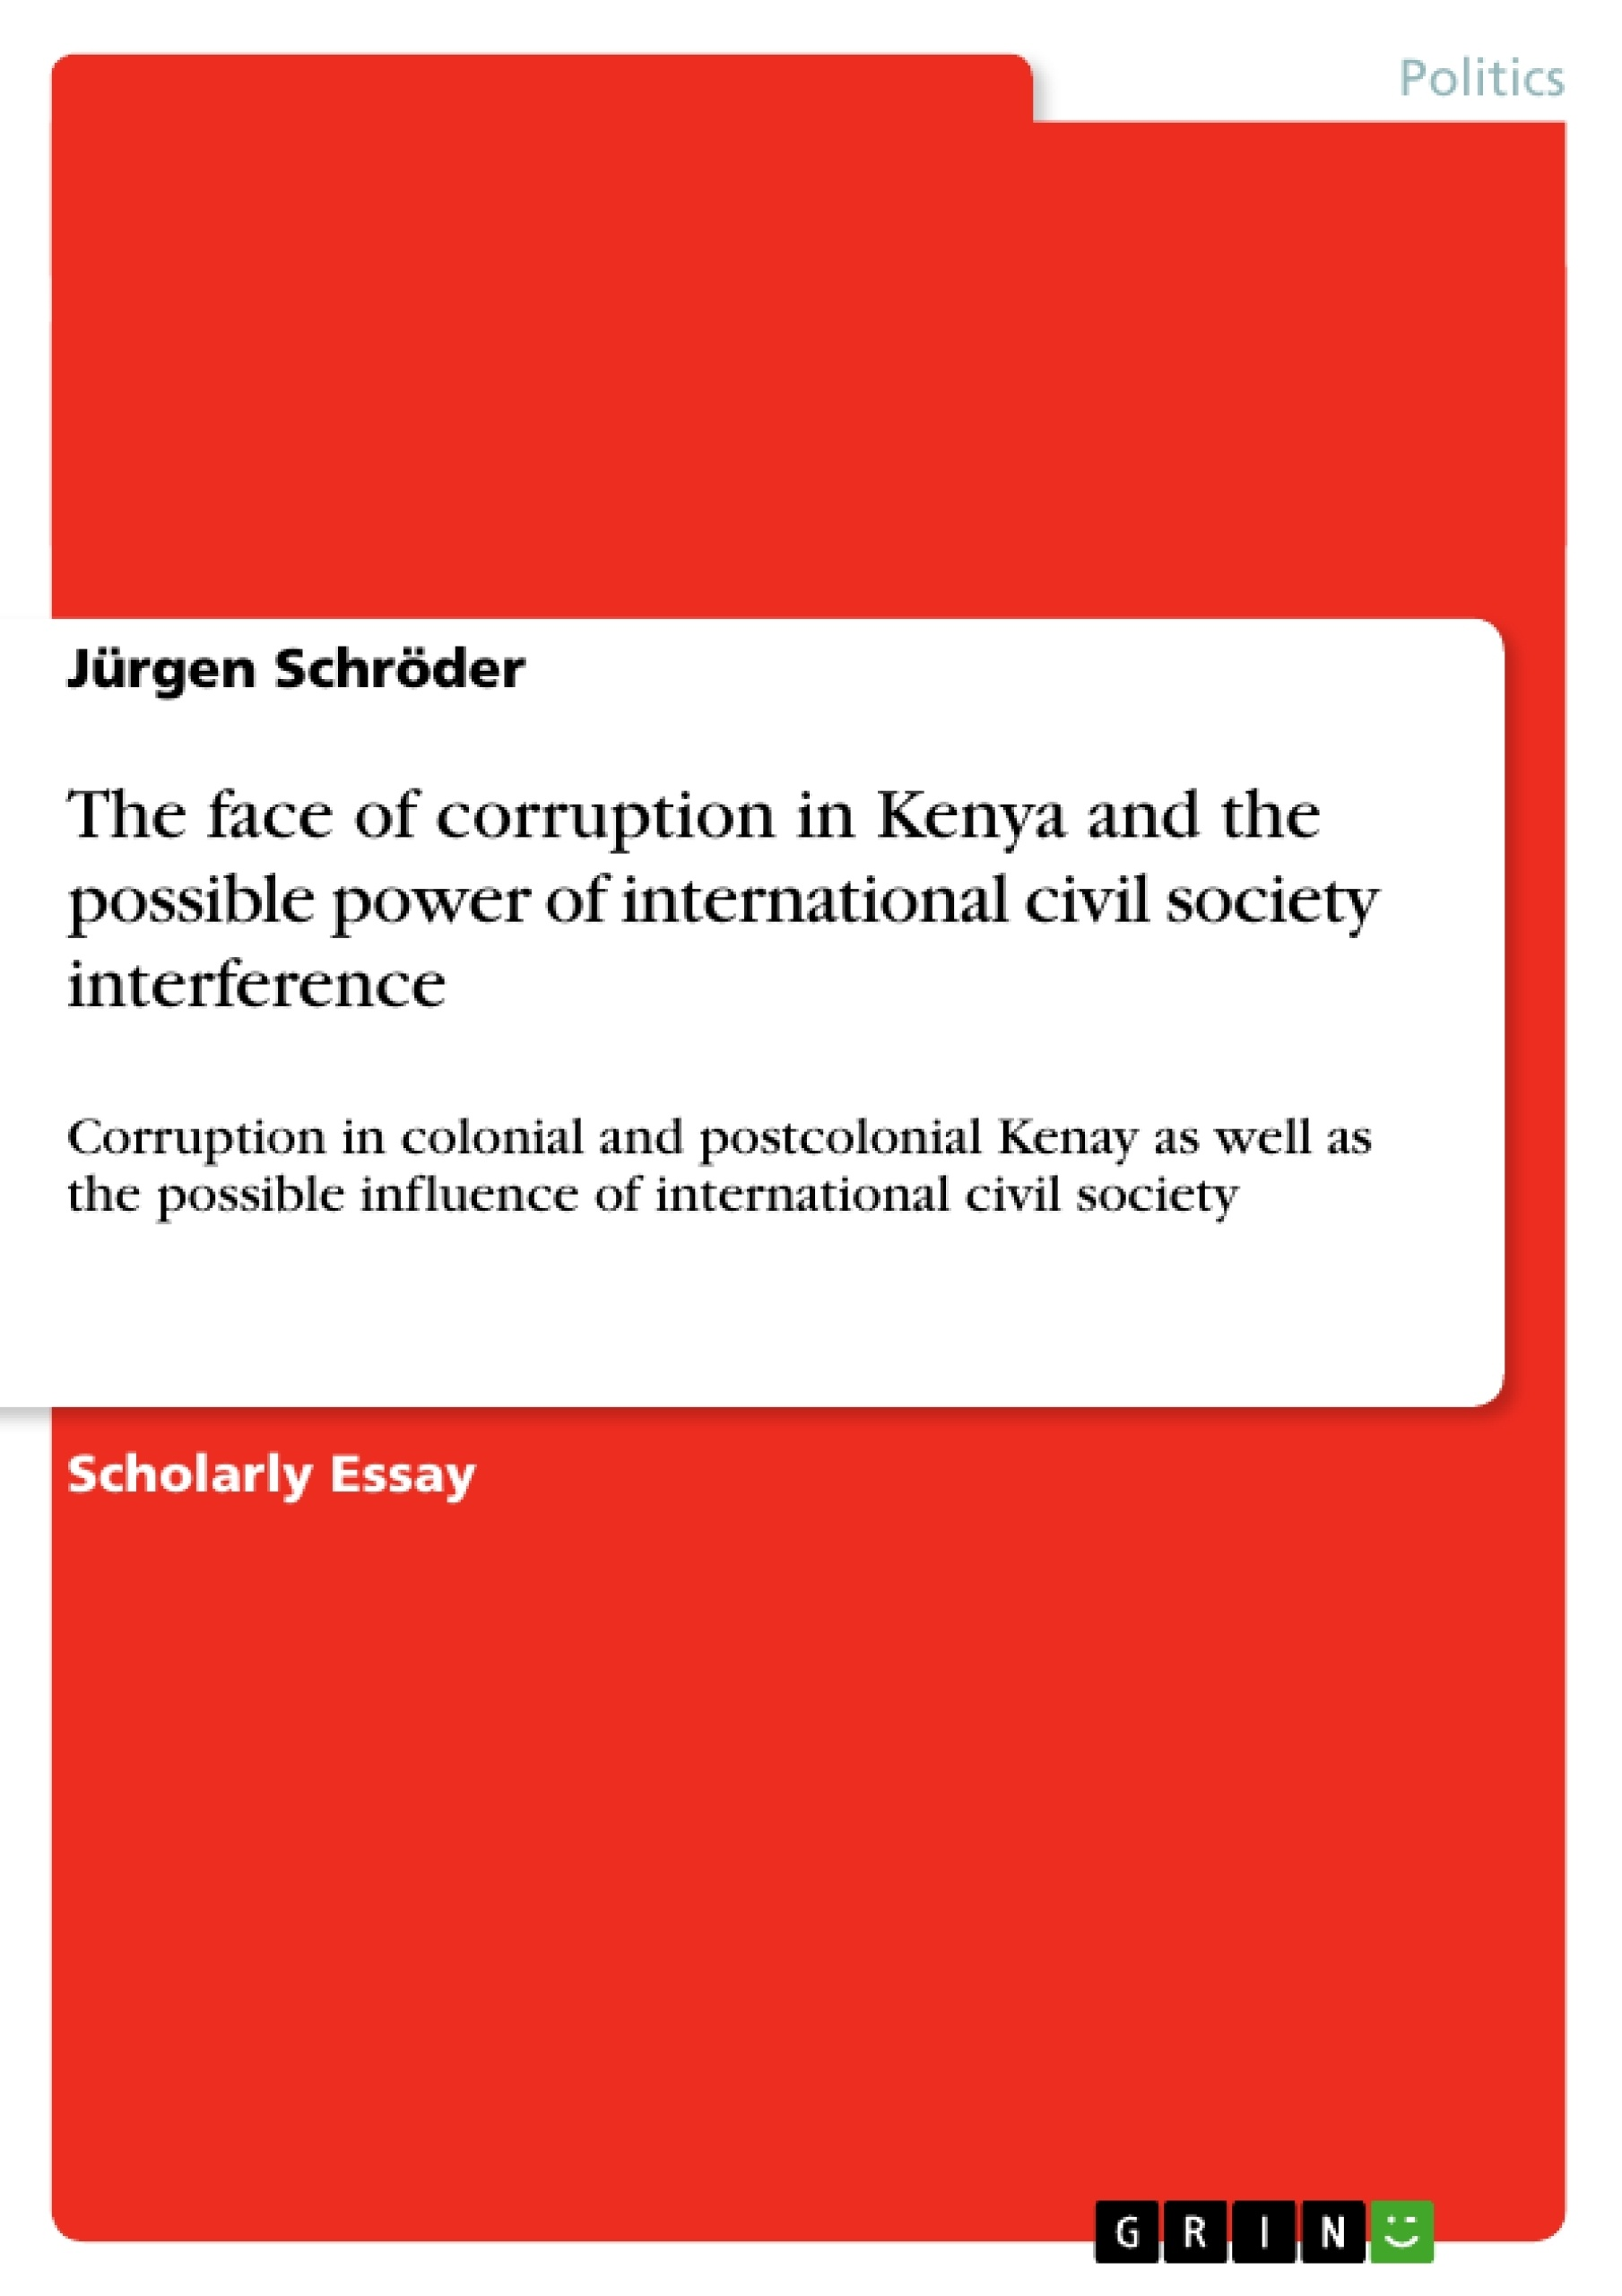 corruption in kenya essay 30112011 tribalism in kenya is responsible for underdevelopment, corruption, the rigging of elections and violence what can its background tell us about the future.